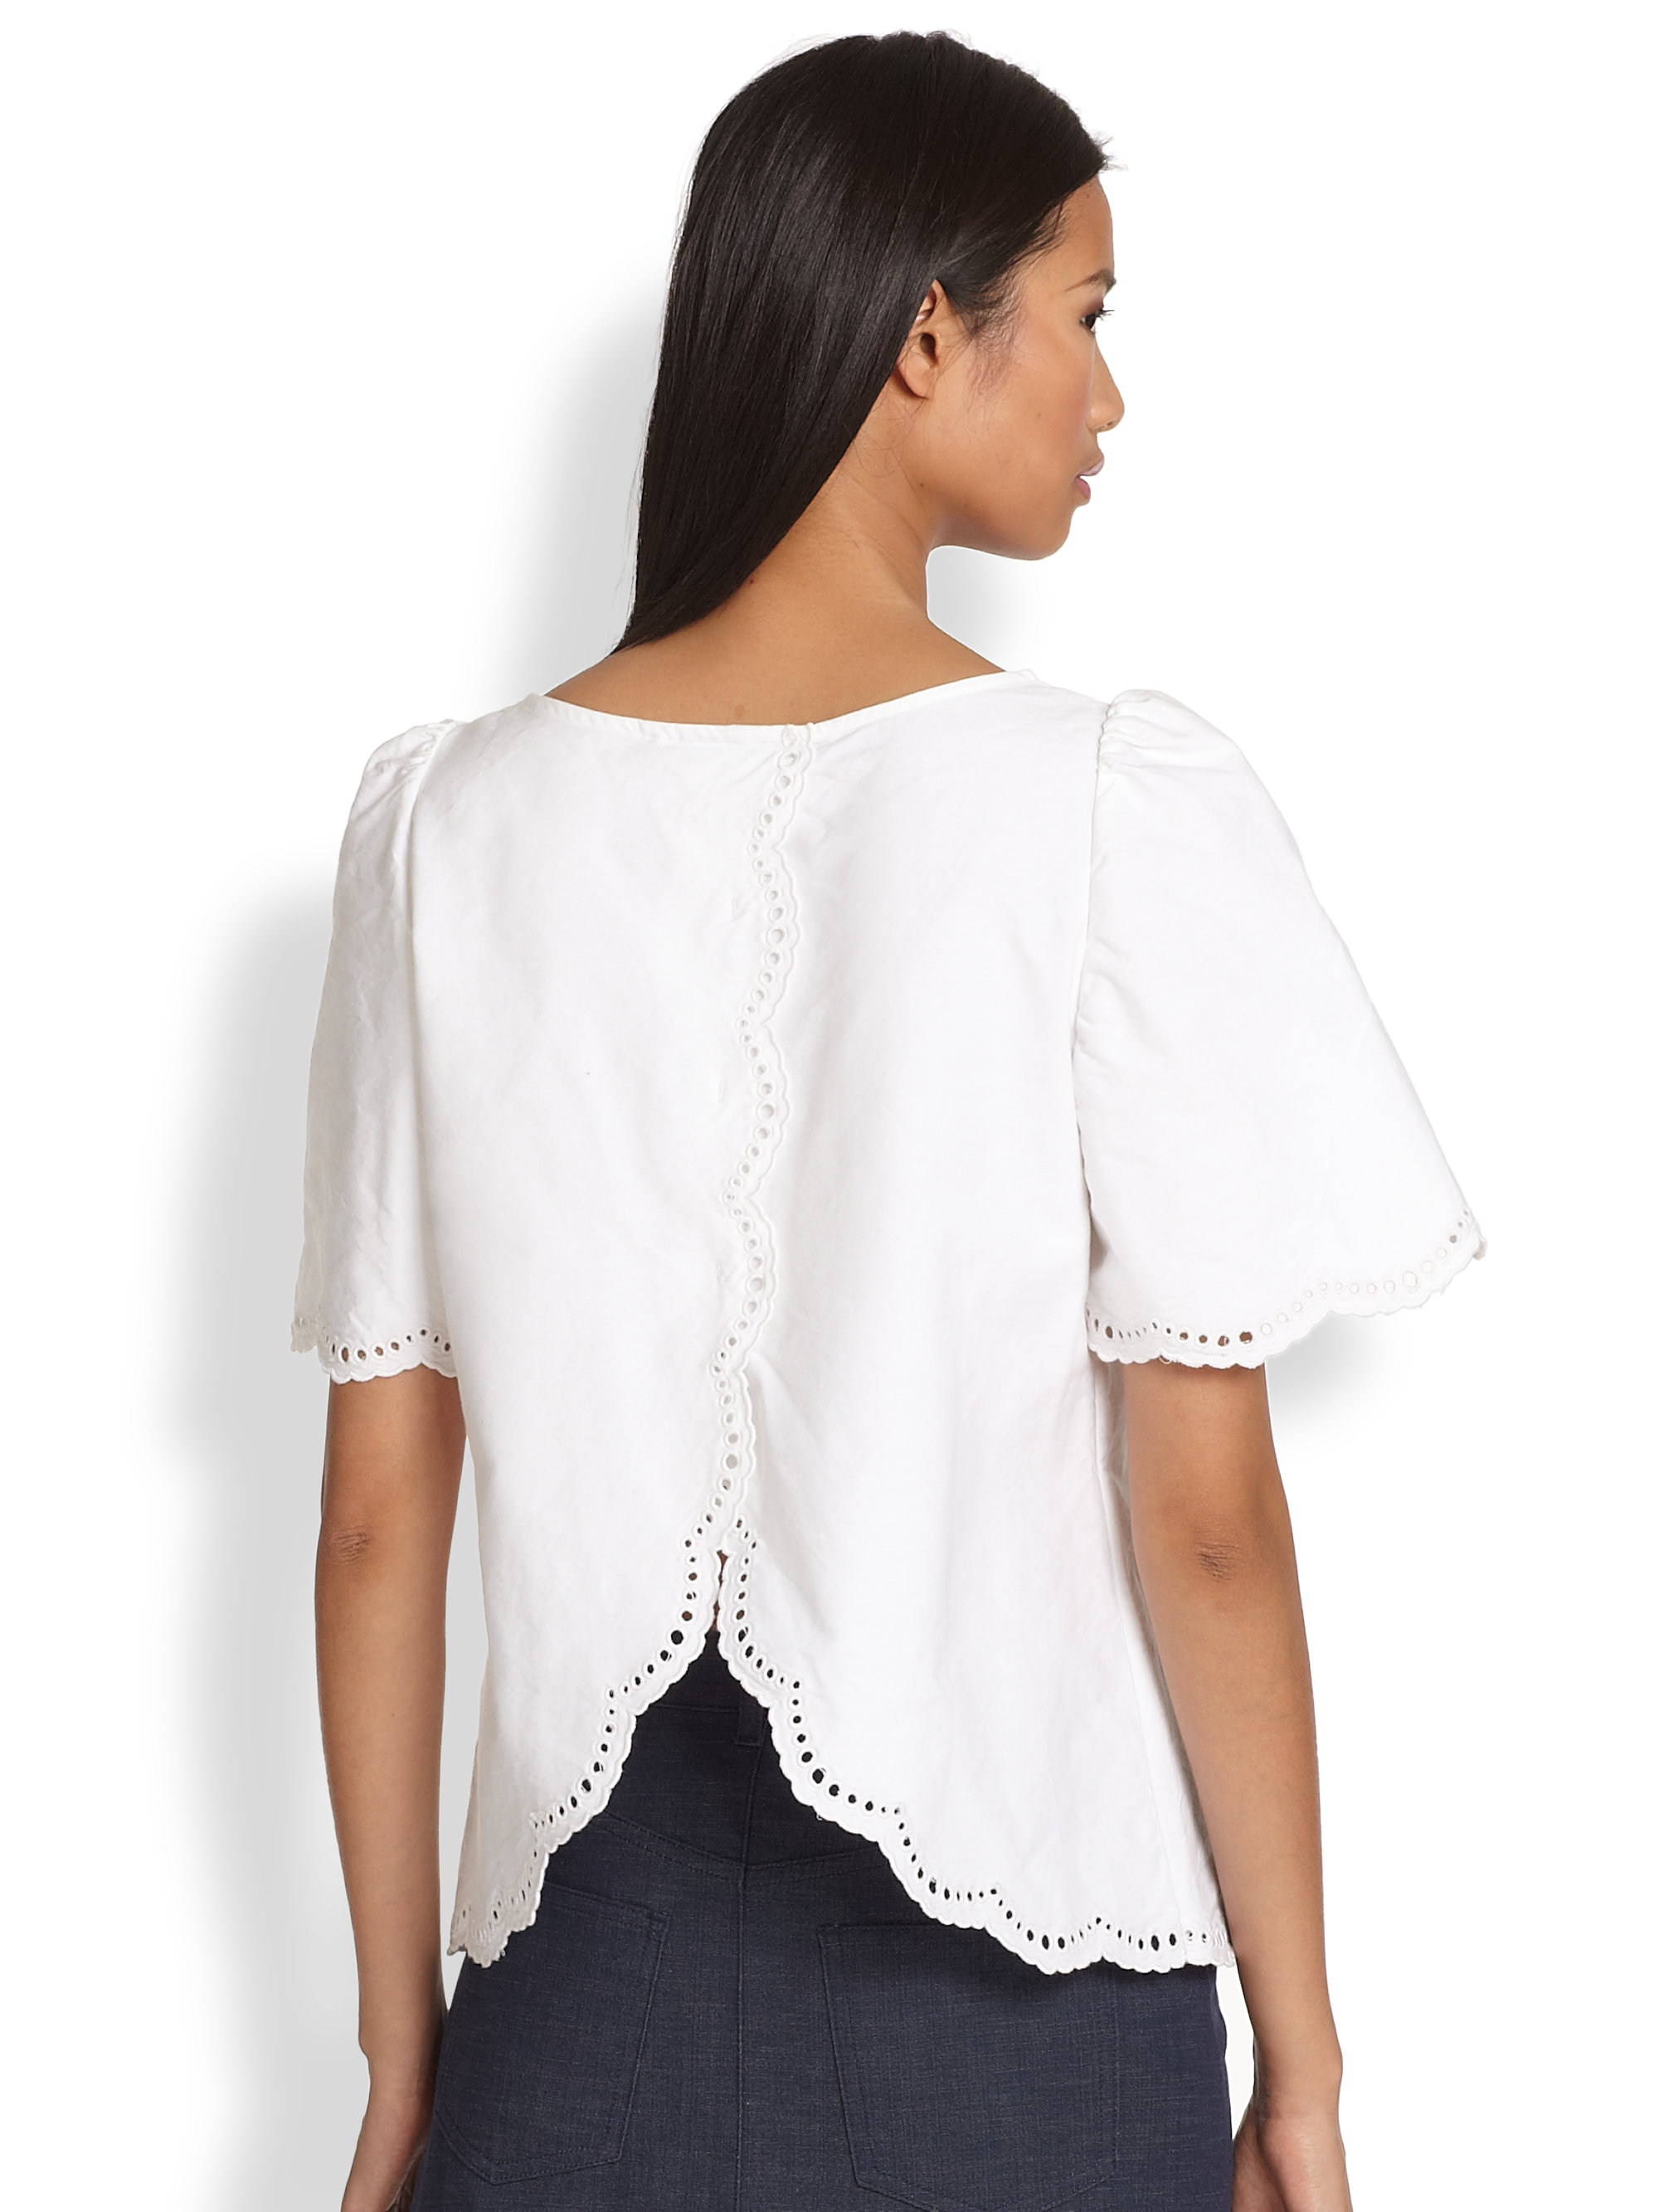 83b8cb1988354 A.P.C. Splitback Scalloped Eyelet Cotton Blouse in White - Lyst